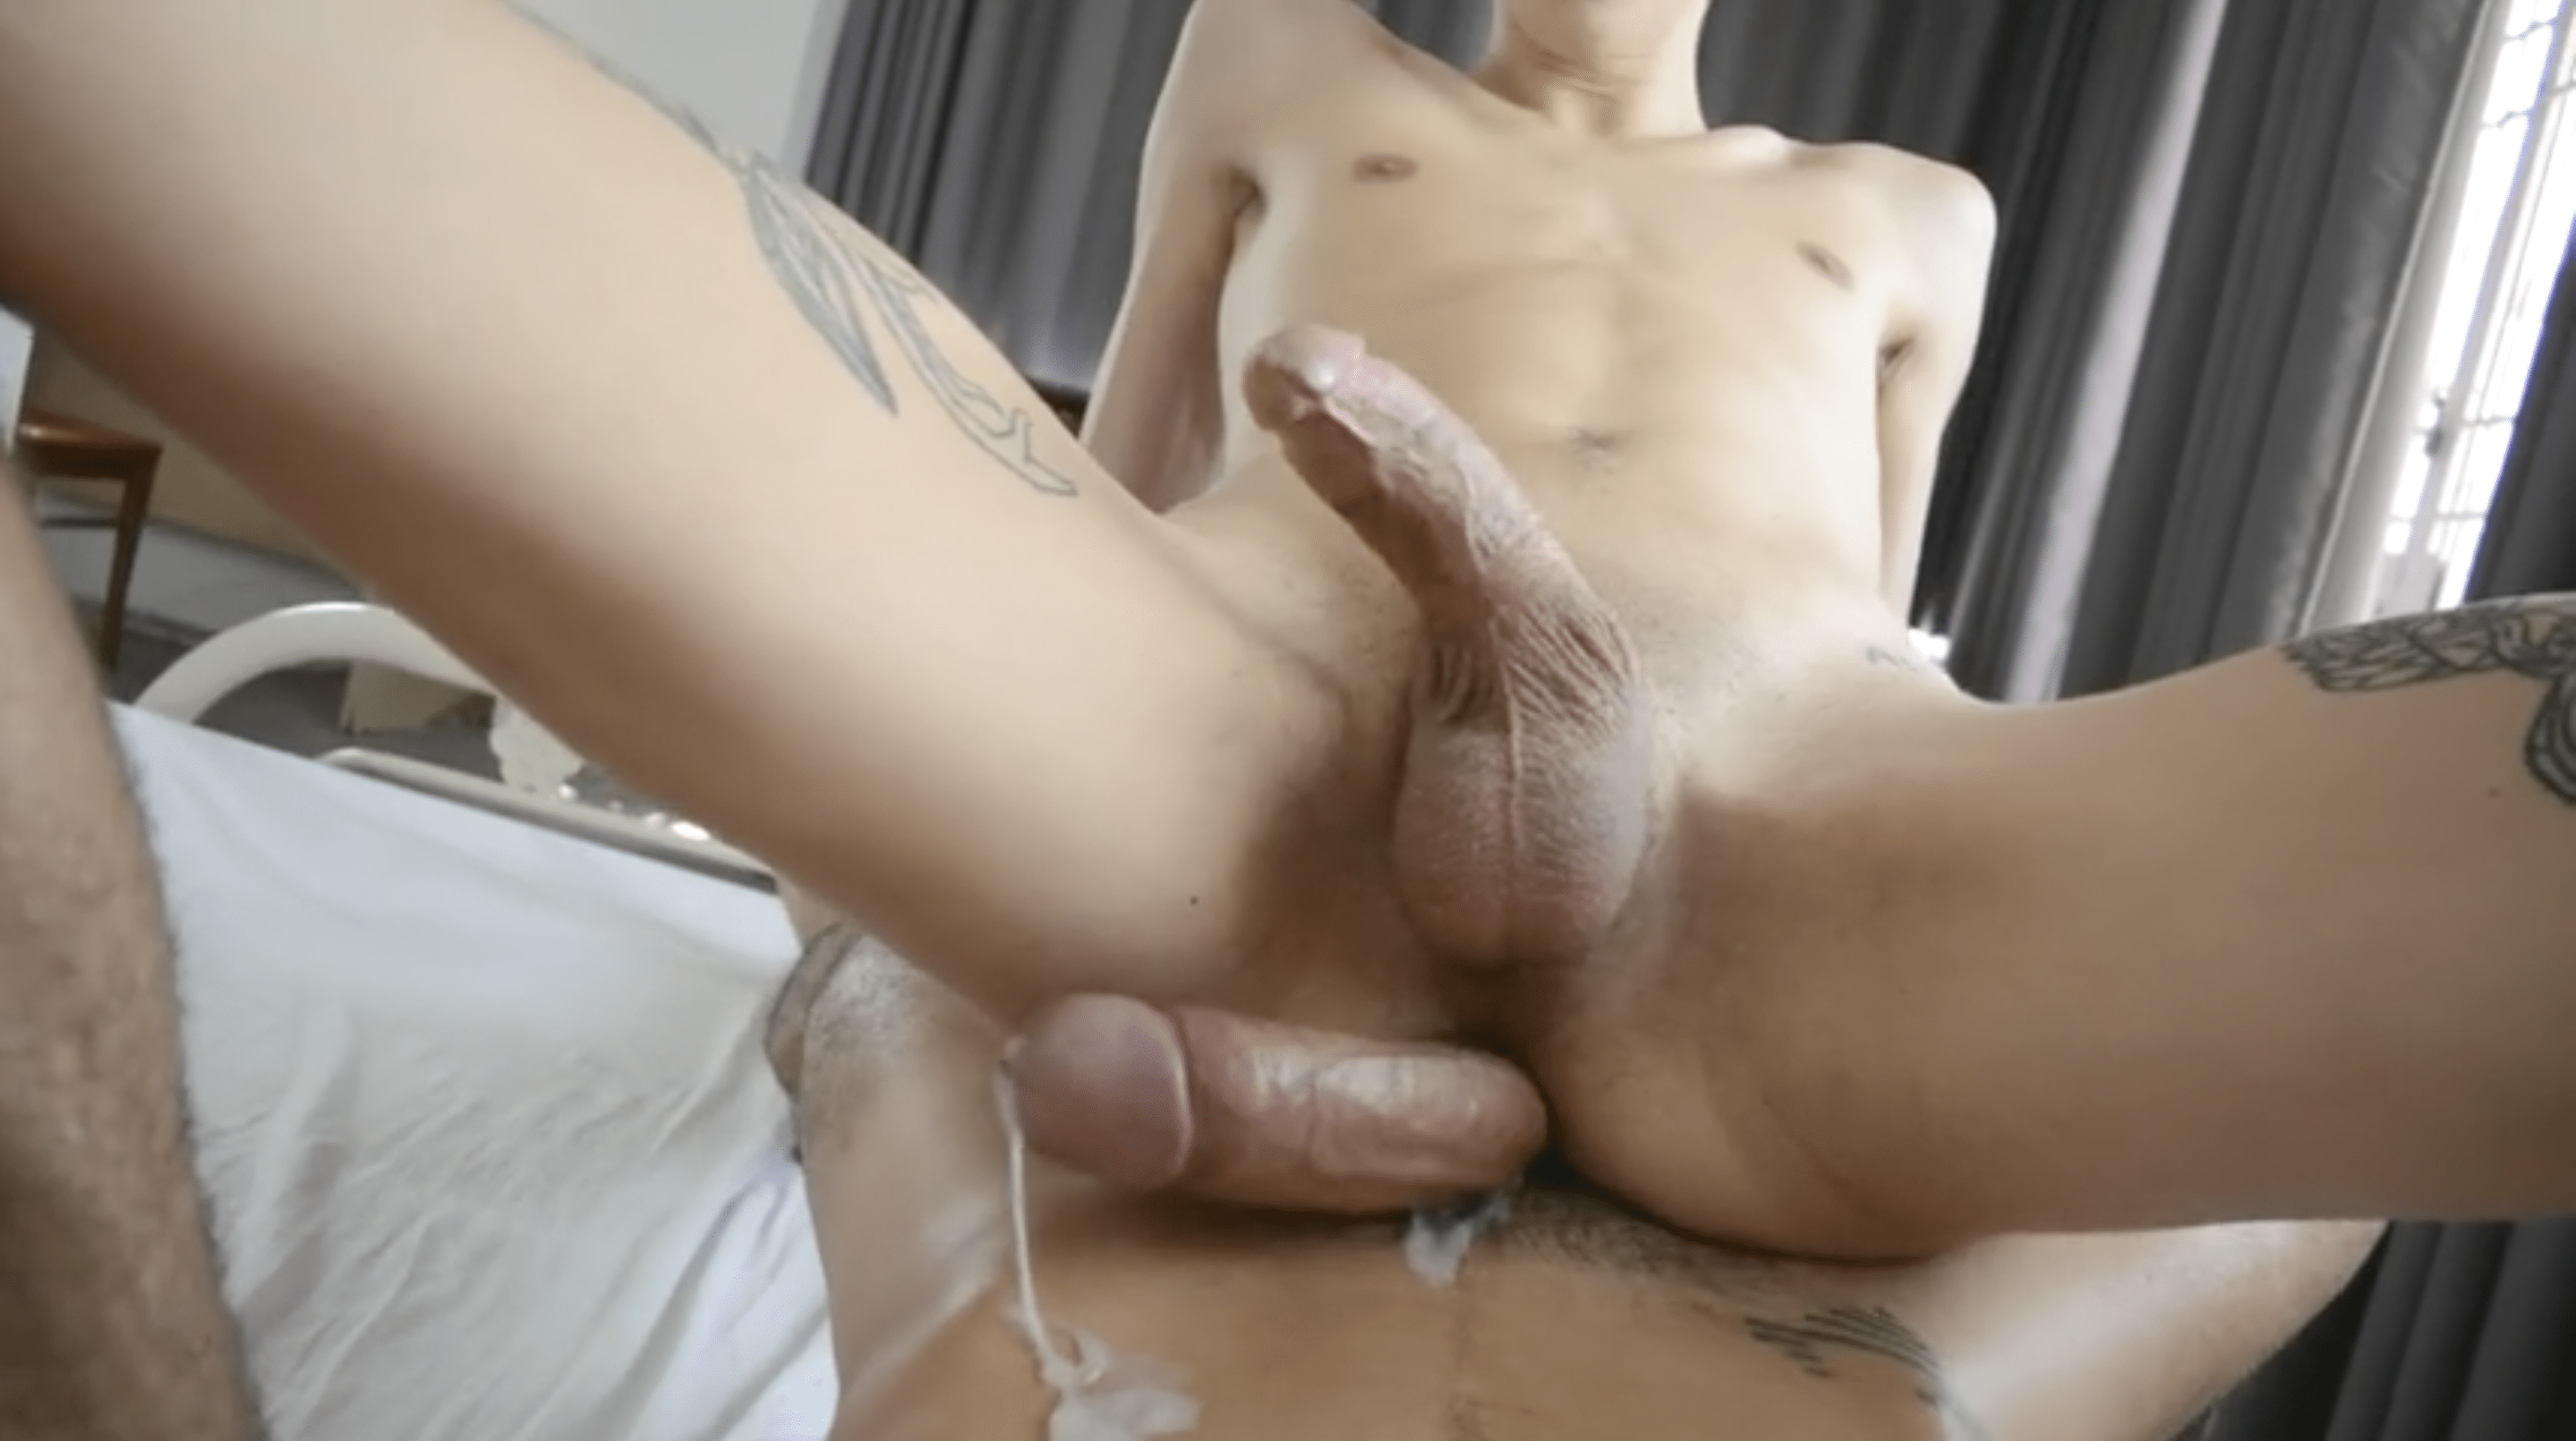 I pee on his cock outdoors then i ride him hard